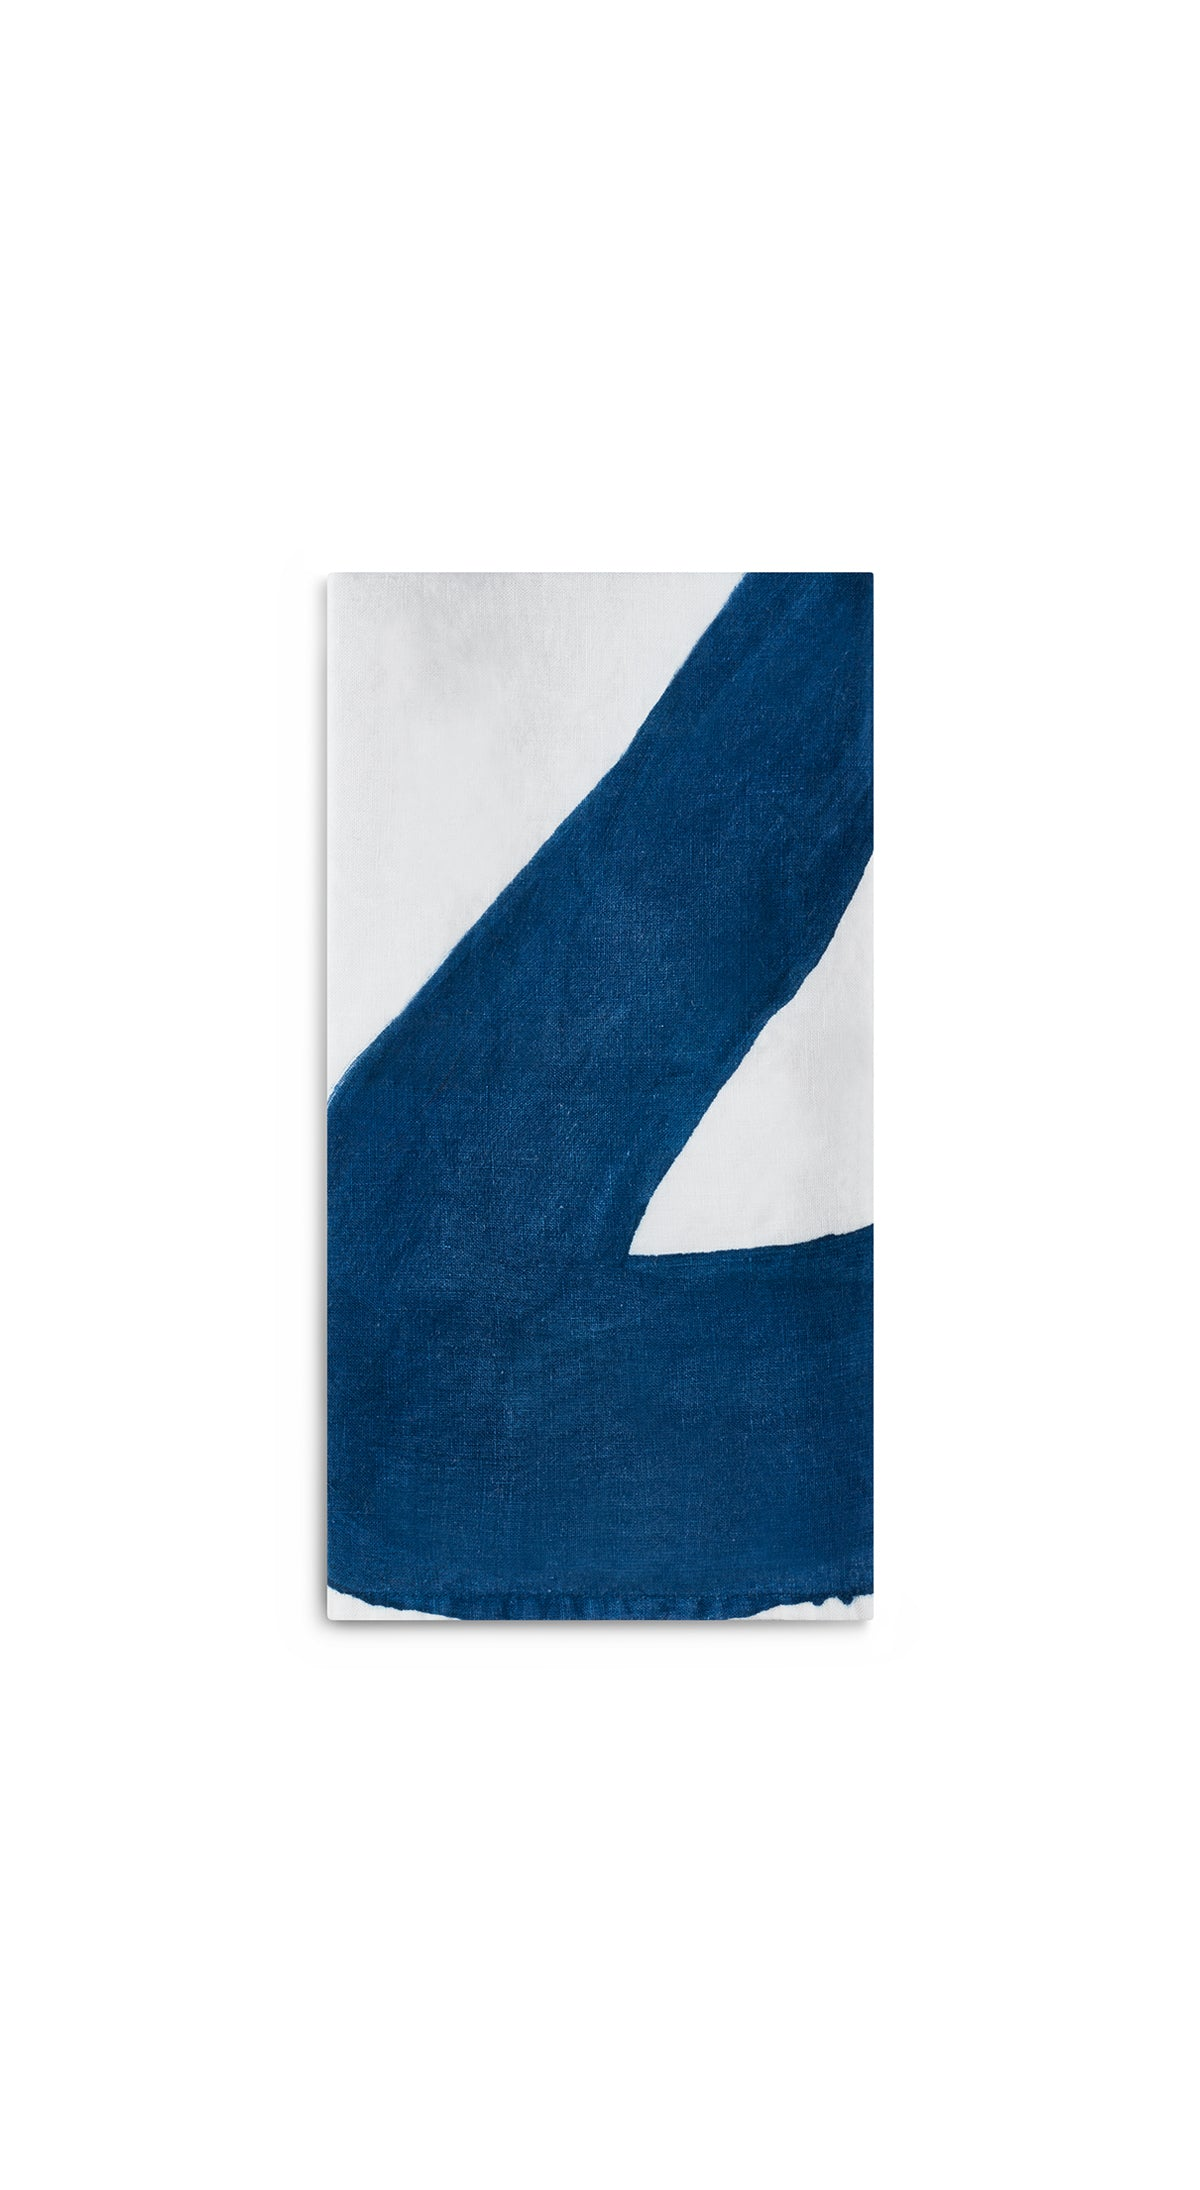 Alphabet Napkin 'Z' in Midnight Blue